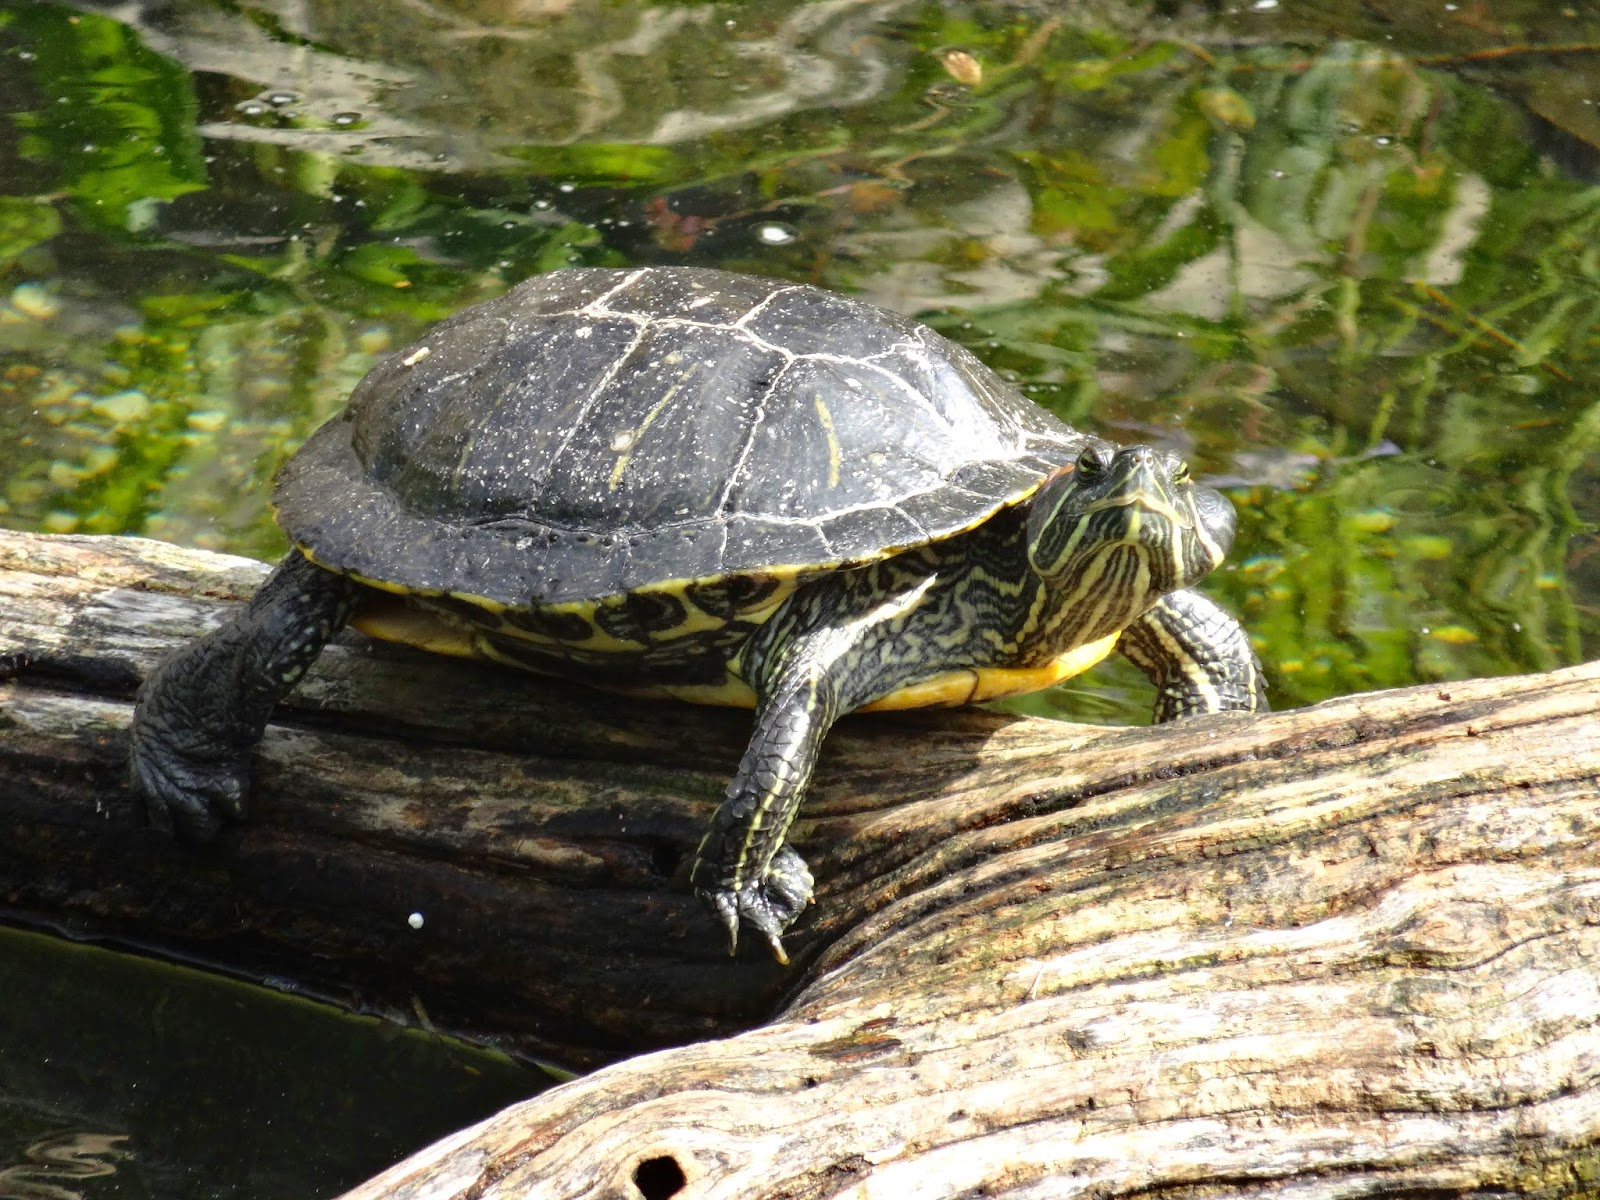 Love, Joy and Peas: Cute Sunning Turtles for Wild Wednesday